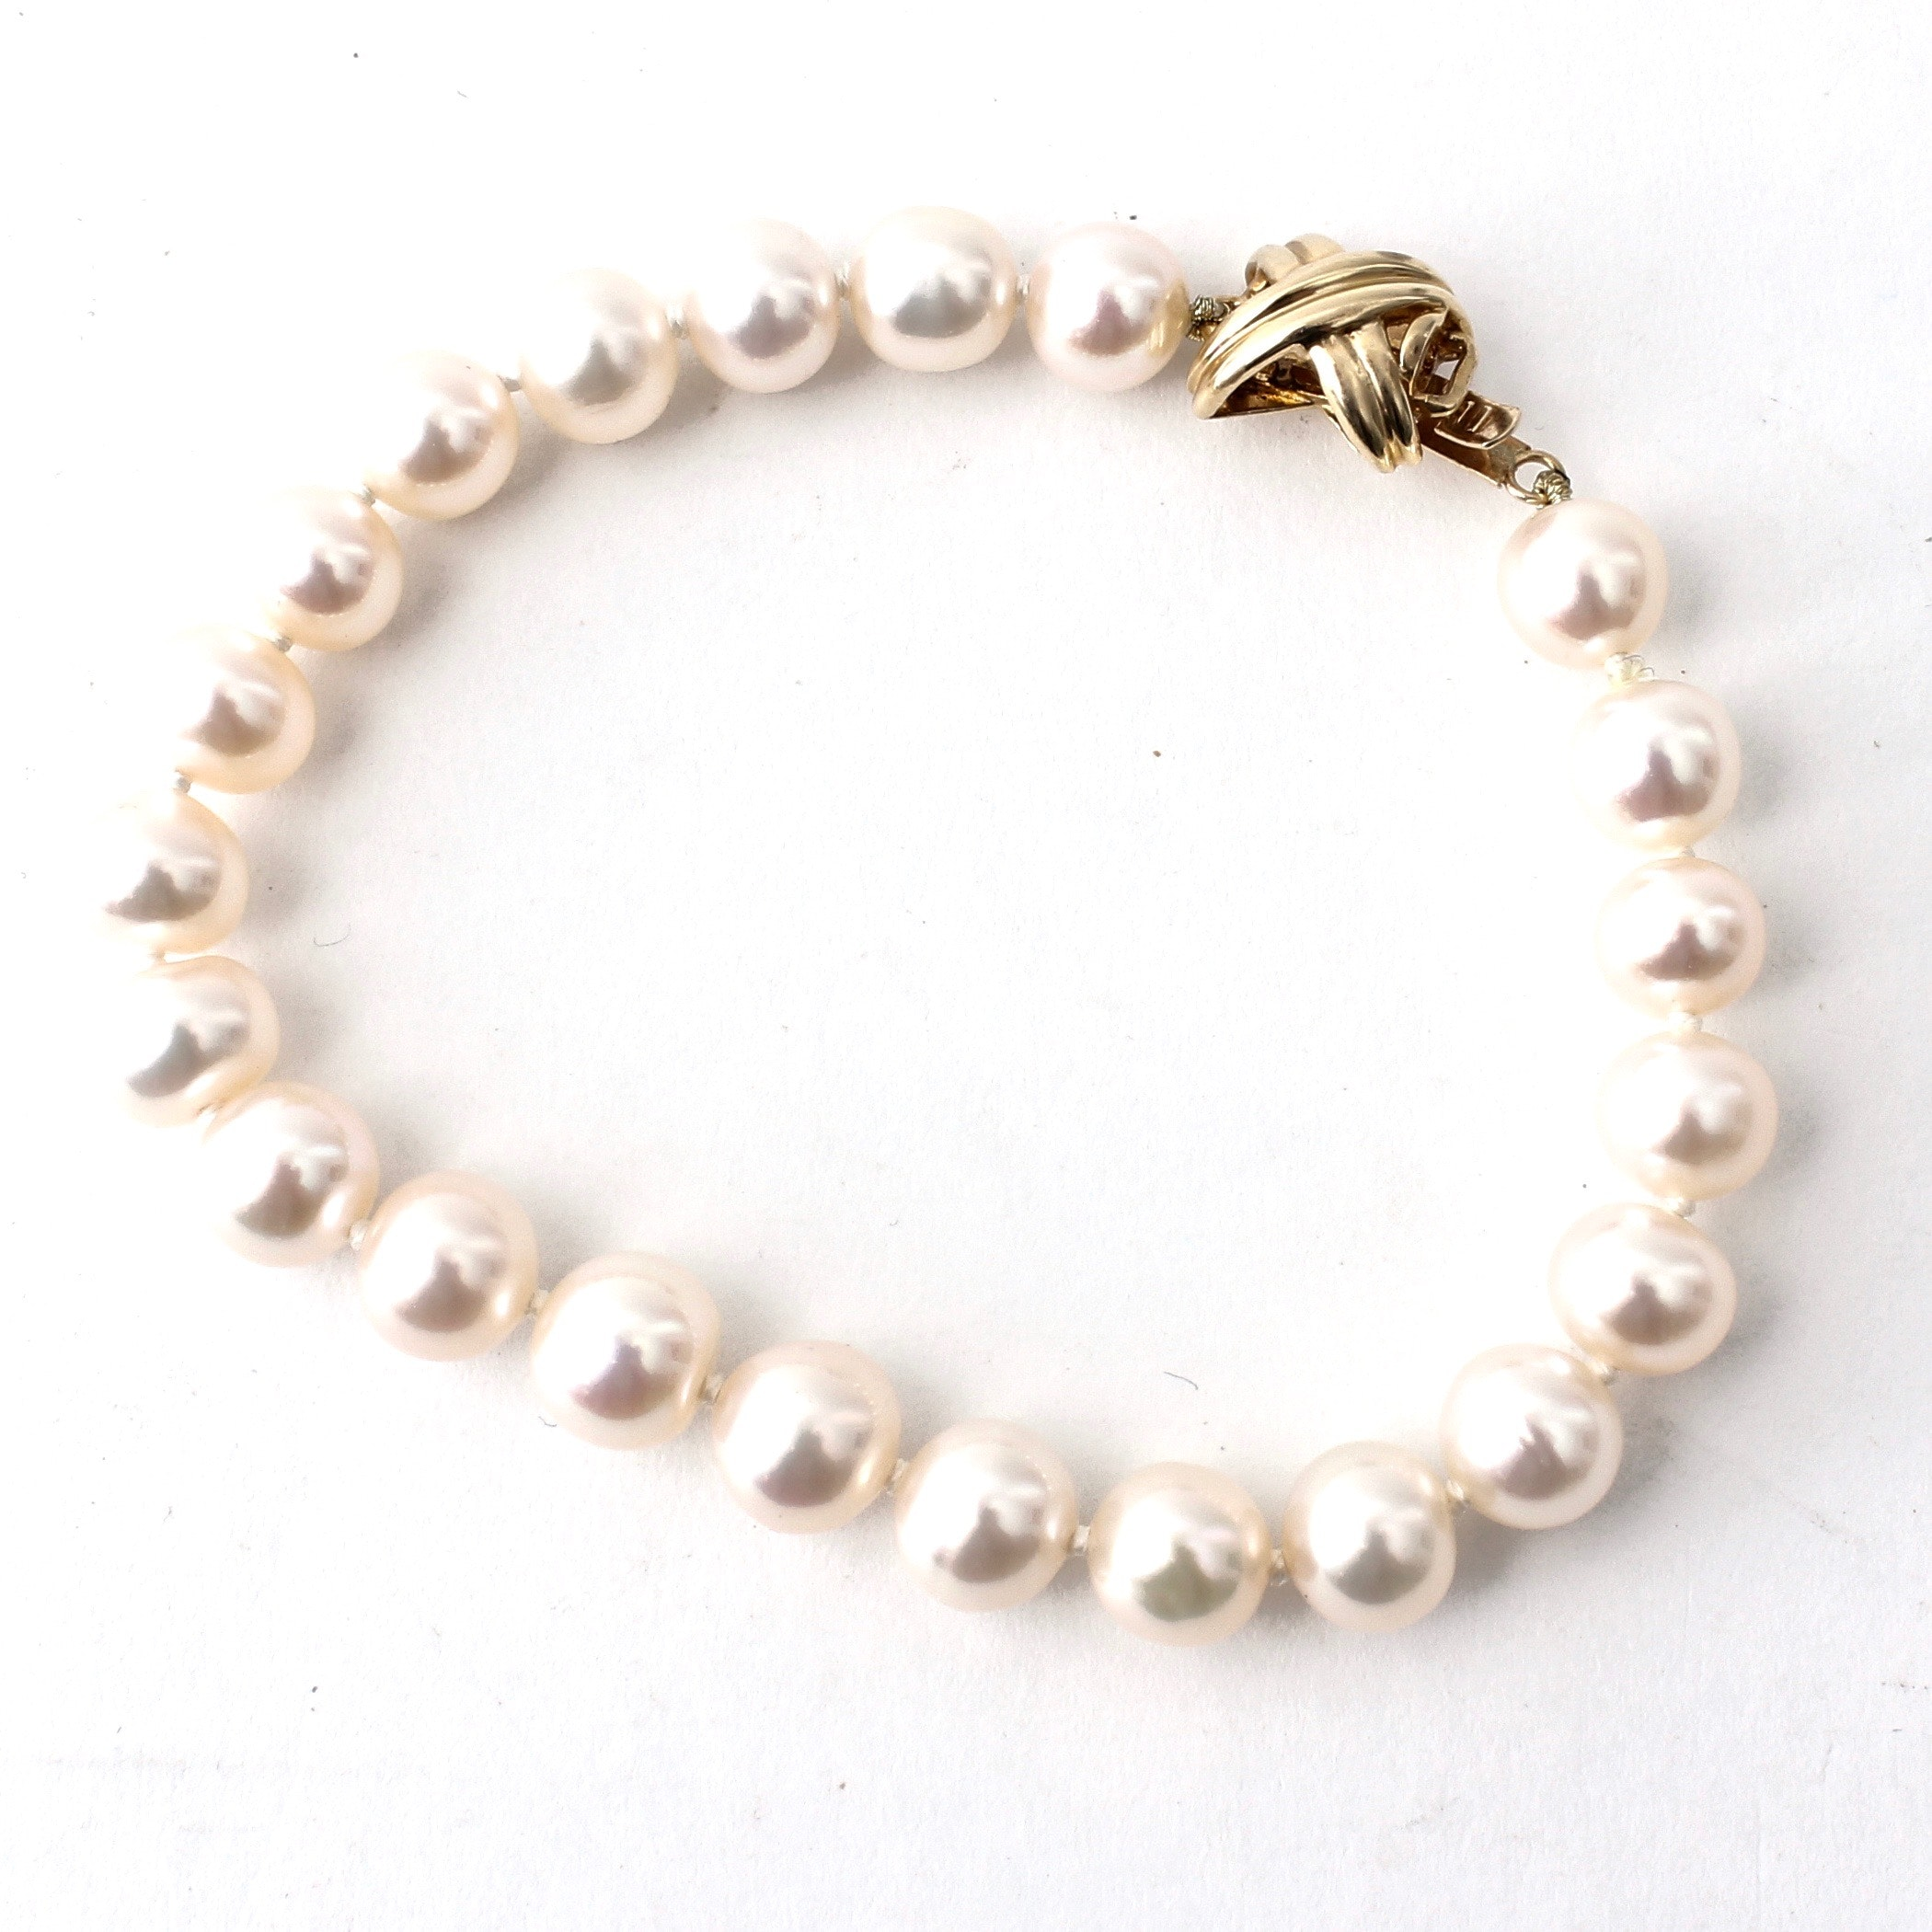 Cultured Freshwater Pearl Bracelet with Ornate 14K Gold Clasp